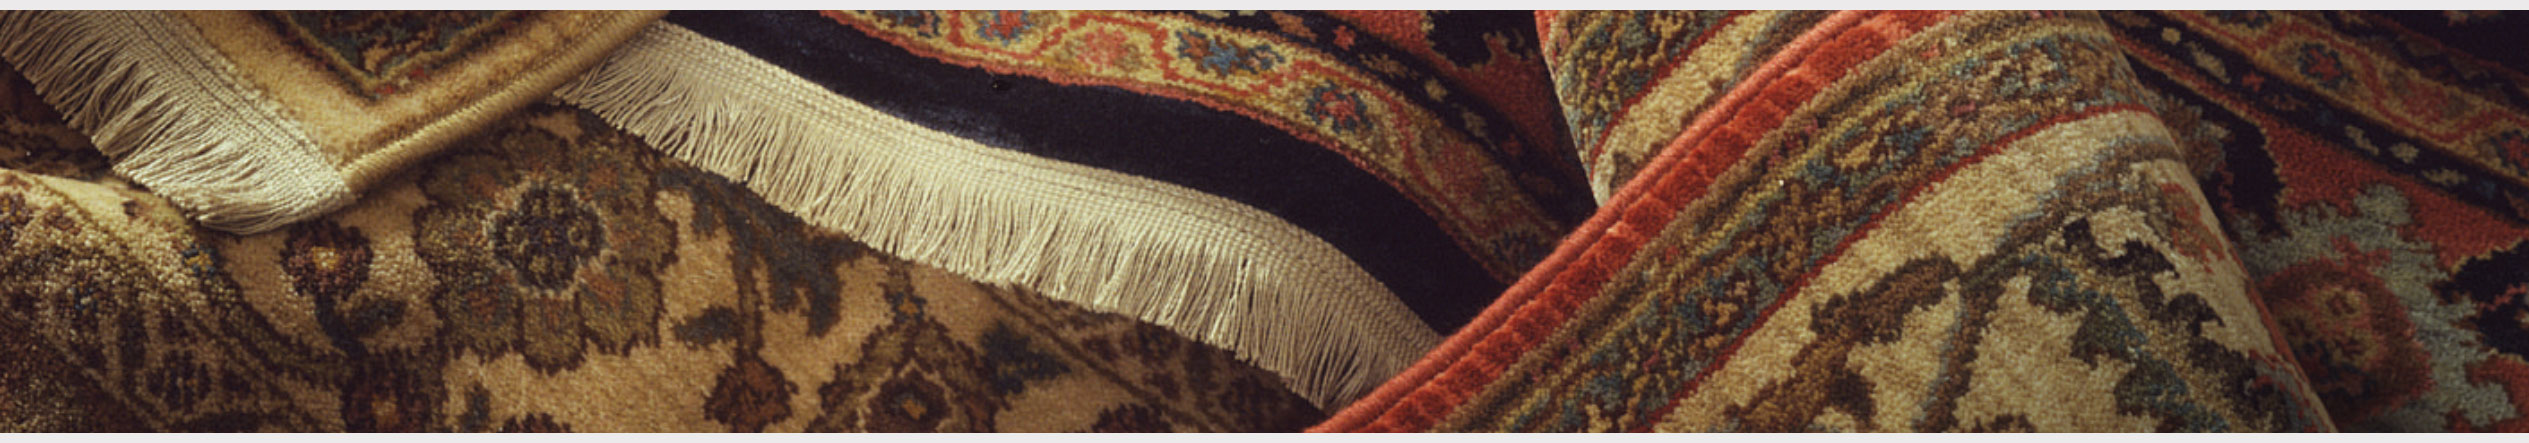 Area Rugs at Jordan's Furniture stores in CT, MA, NH and RI